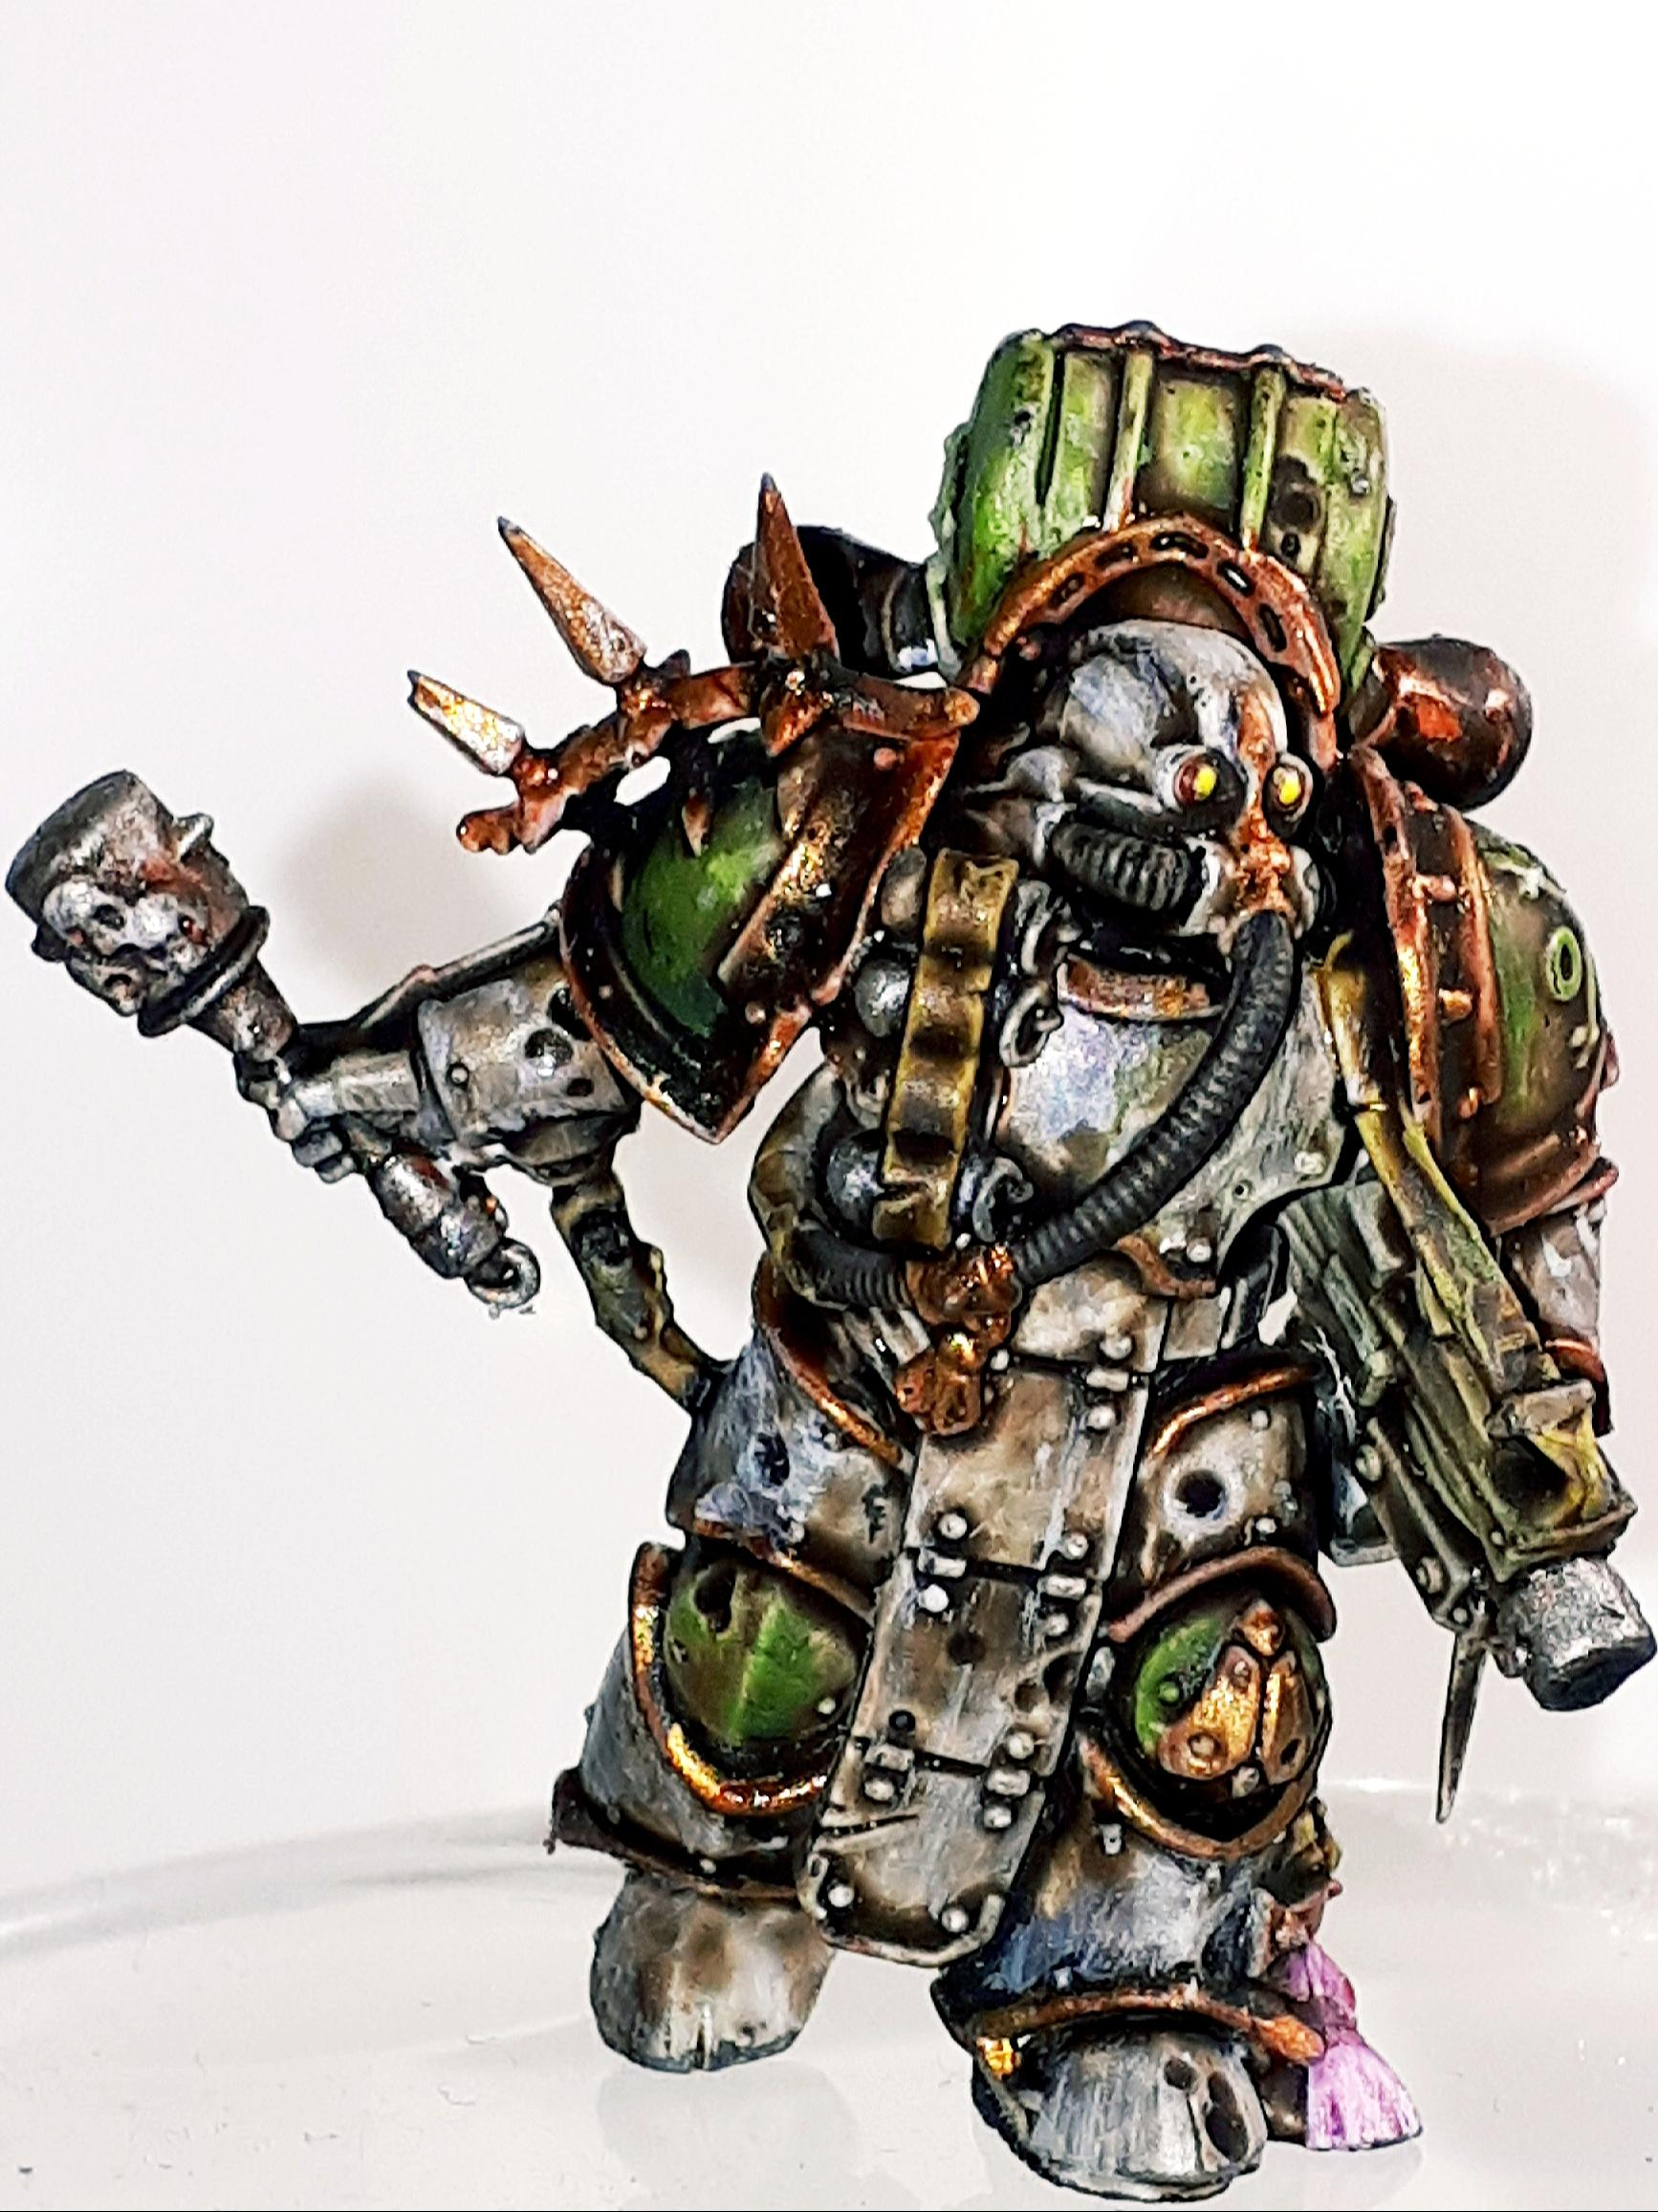 Chaos Space Marines, Death Guard, Warhammer 40,000